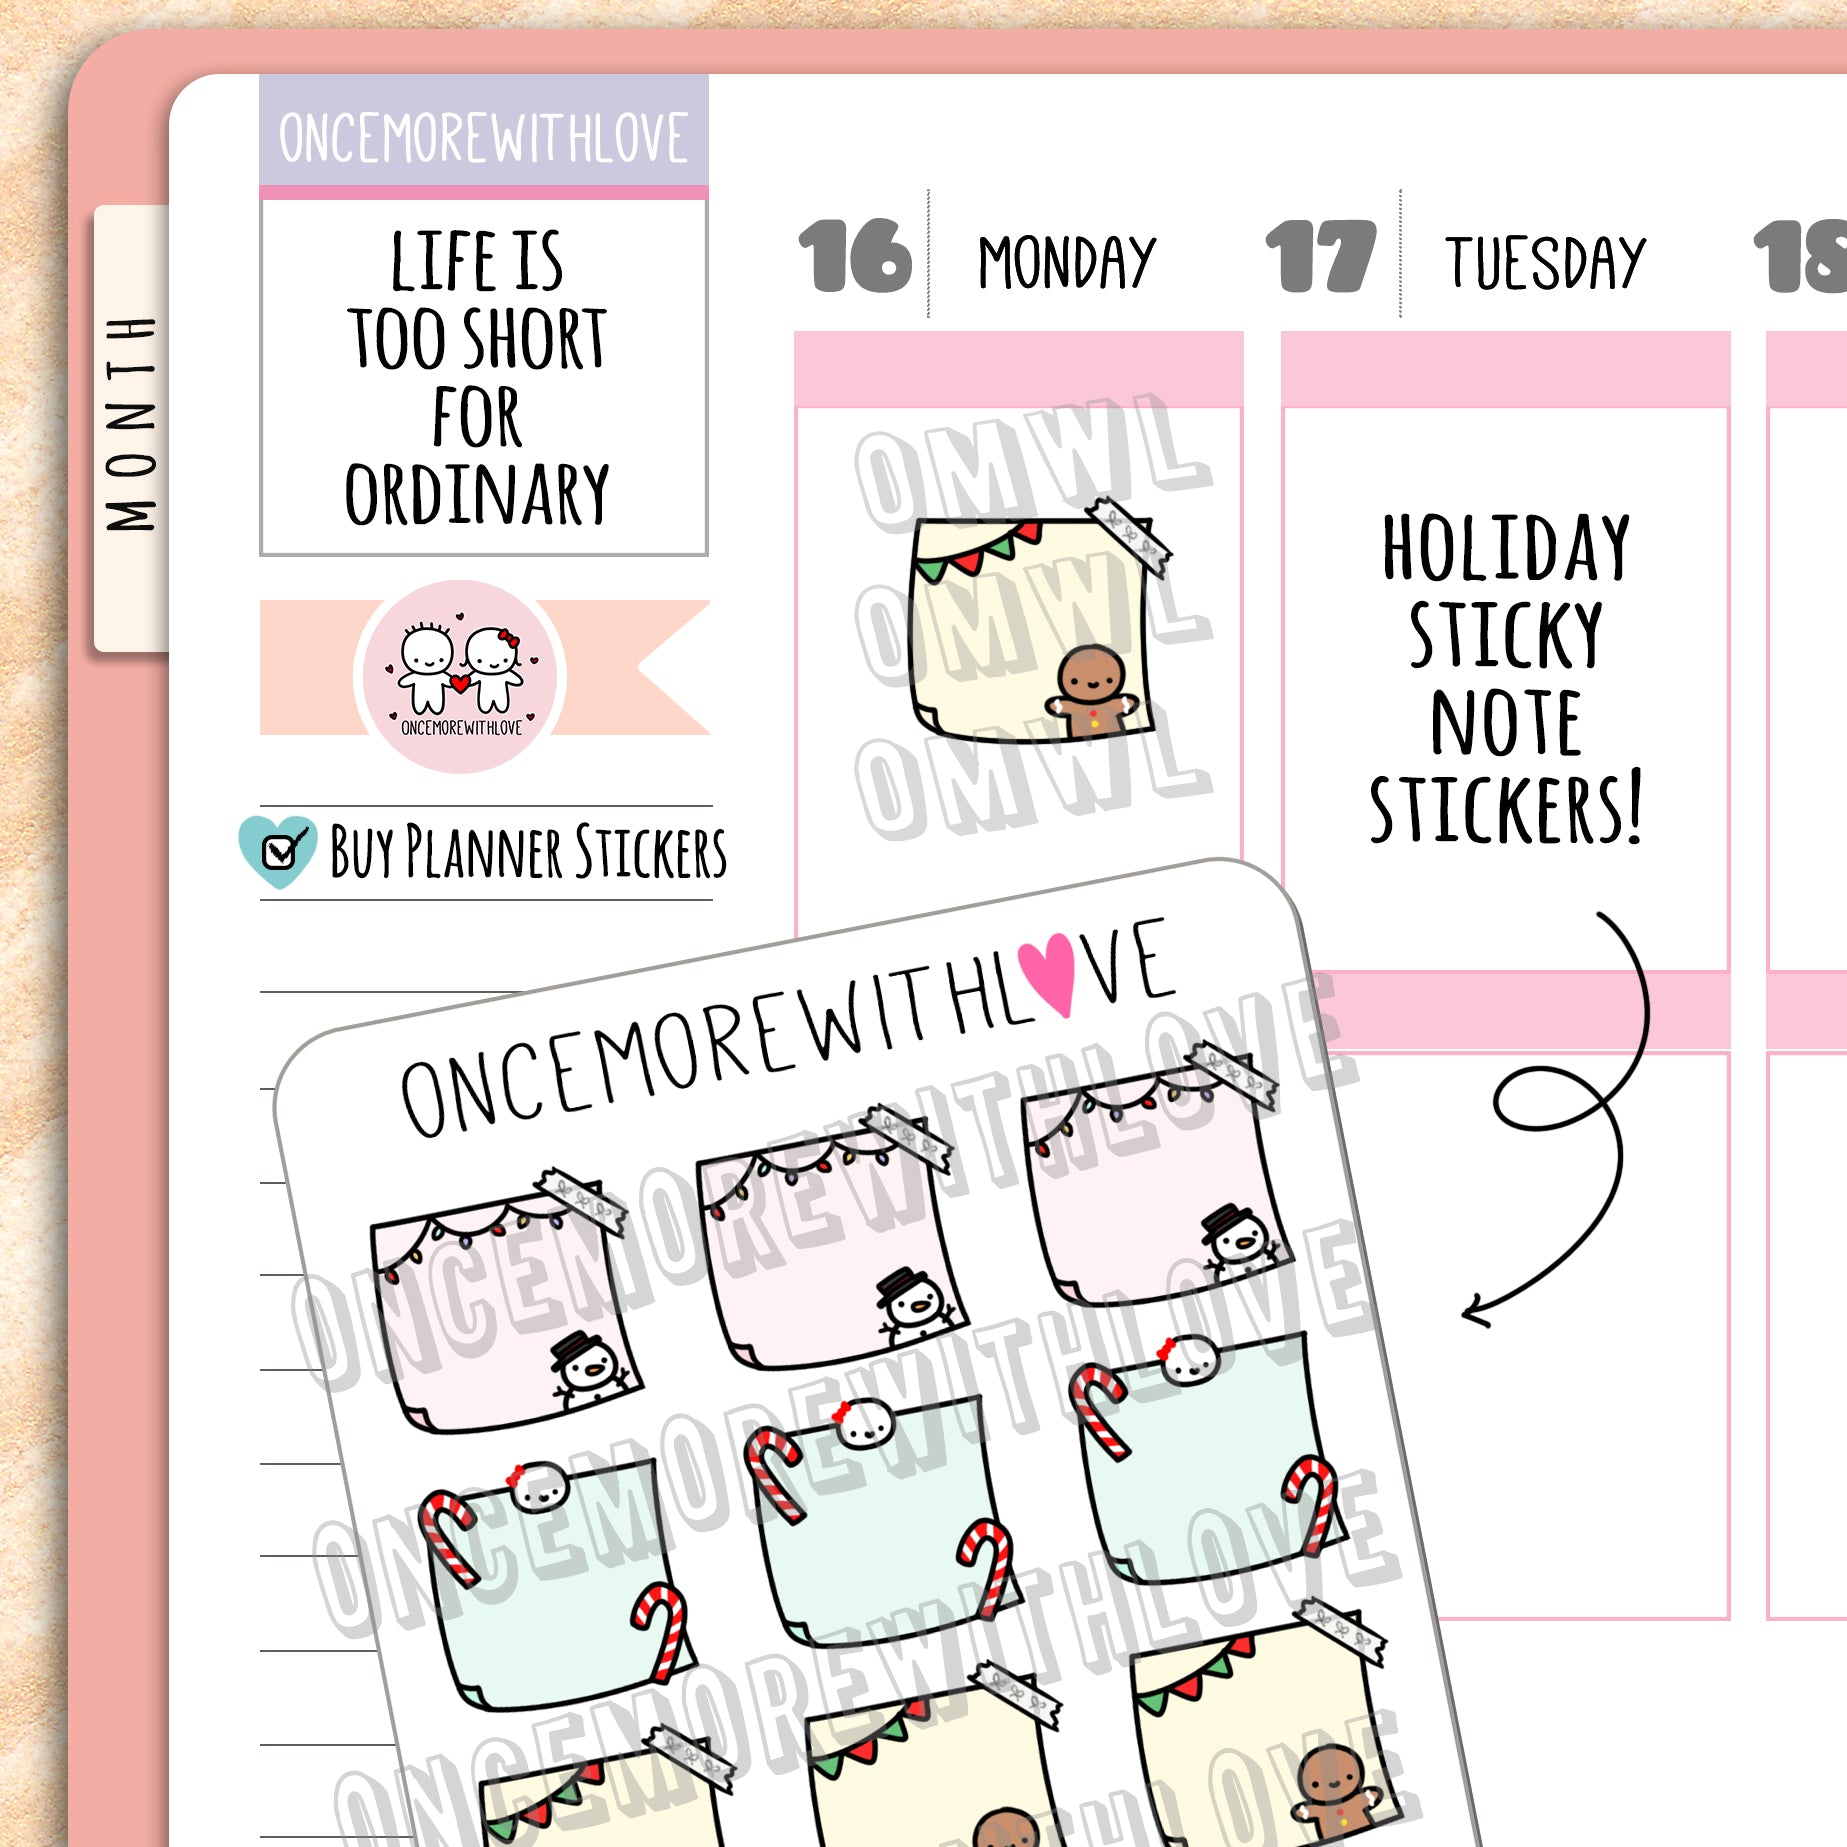 M662 - Holiday Sticky Notes Planner Stickers